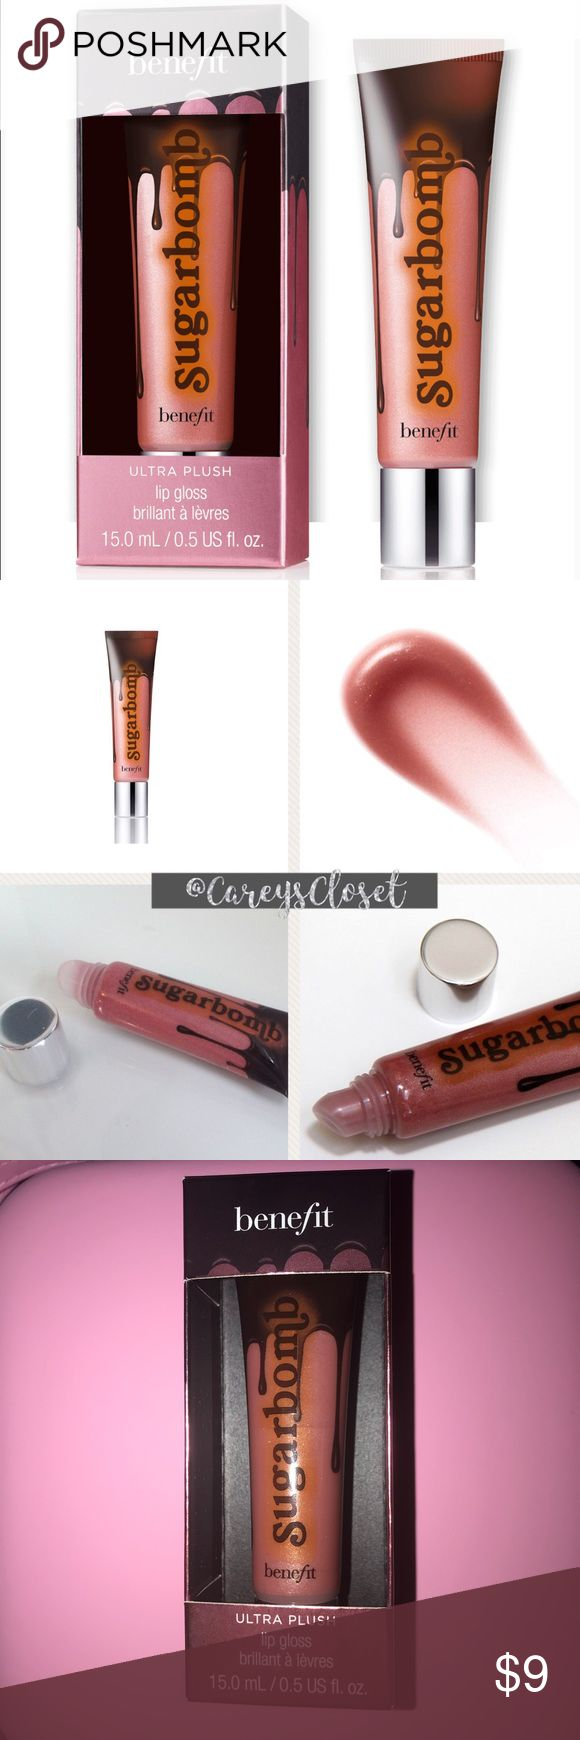 🎄Stocking Stuffer🎄 NWT Ultra Plush Lip Gloss Sugarbomb is a soft & silky gloss that glides on so smooth, drenching lips in luscious color in this shimmery, pinky nude gloss. Apply to lips for luscious coverage and add a little extra to the center of your bottom lip to make your pout look fuller!  This luscious gloss comes in a soft-squeeze tube and delivers sheer color that takes you from day to night and is never sticky.  Brand new, never swatched. Pic shown is from images.  Color…